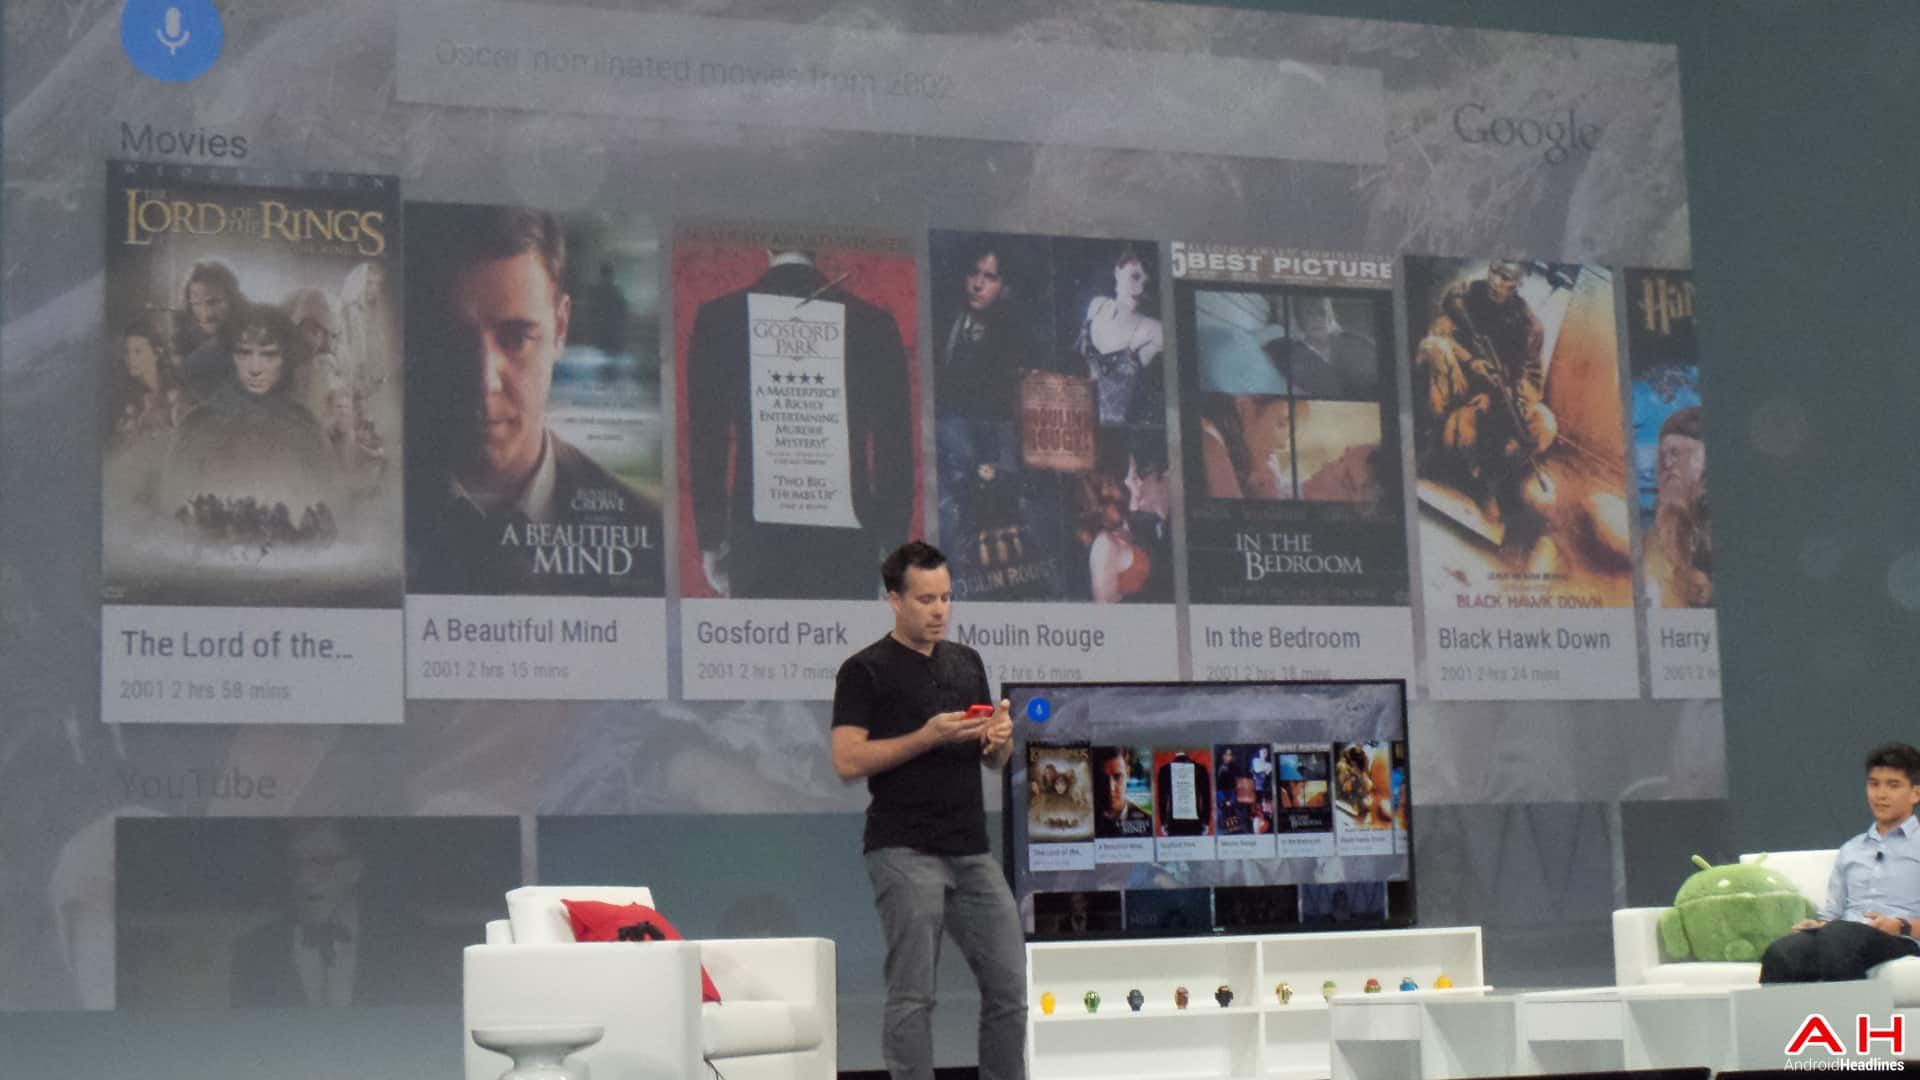 AH Google IO 2014 Android TV 503 of 8